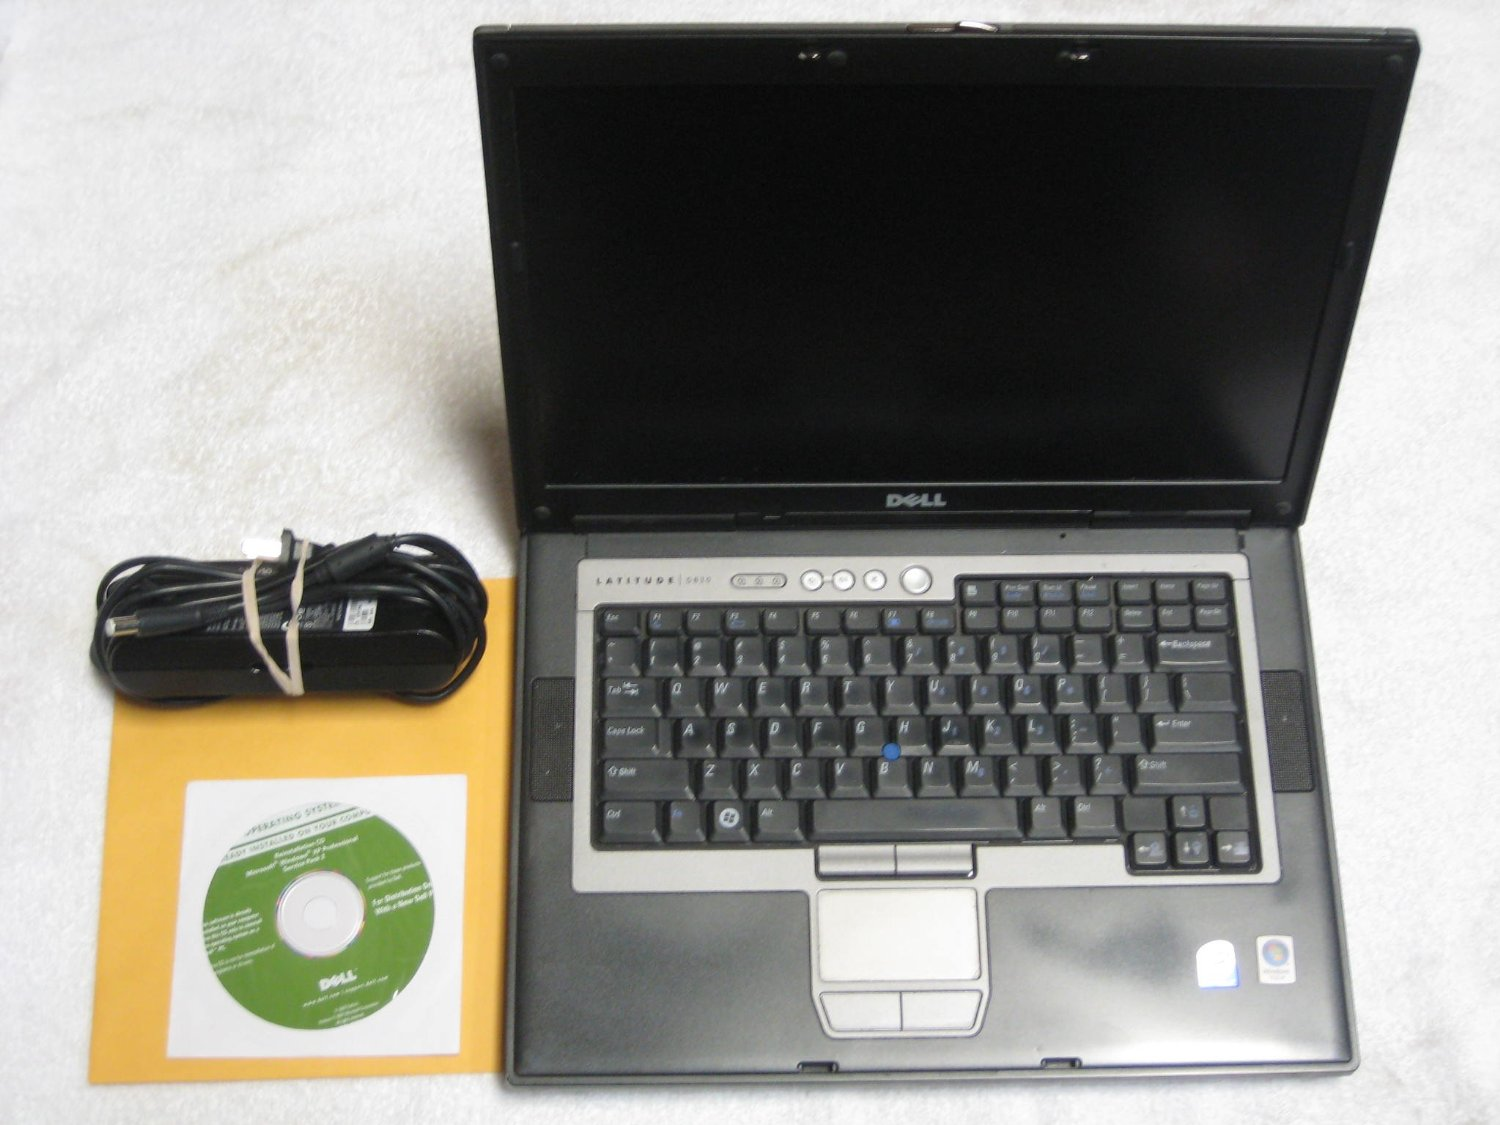 "Dell Latitude D820 15.4"" Laptop with Dell Reinstallation XP Professional Disk (Intel Duo Core 1.83Ghz, 80GB Hard Drive, 2048Mb RAM, DVD/CDRW Drive, Wifi, XP Professional)"